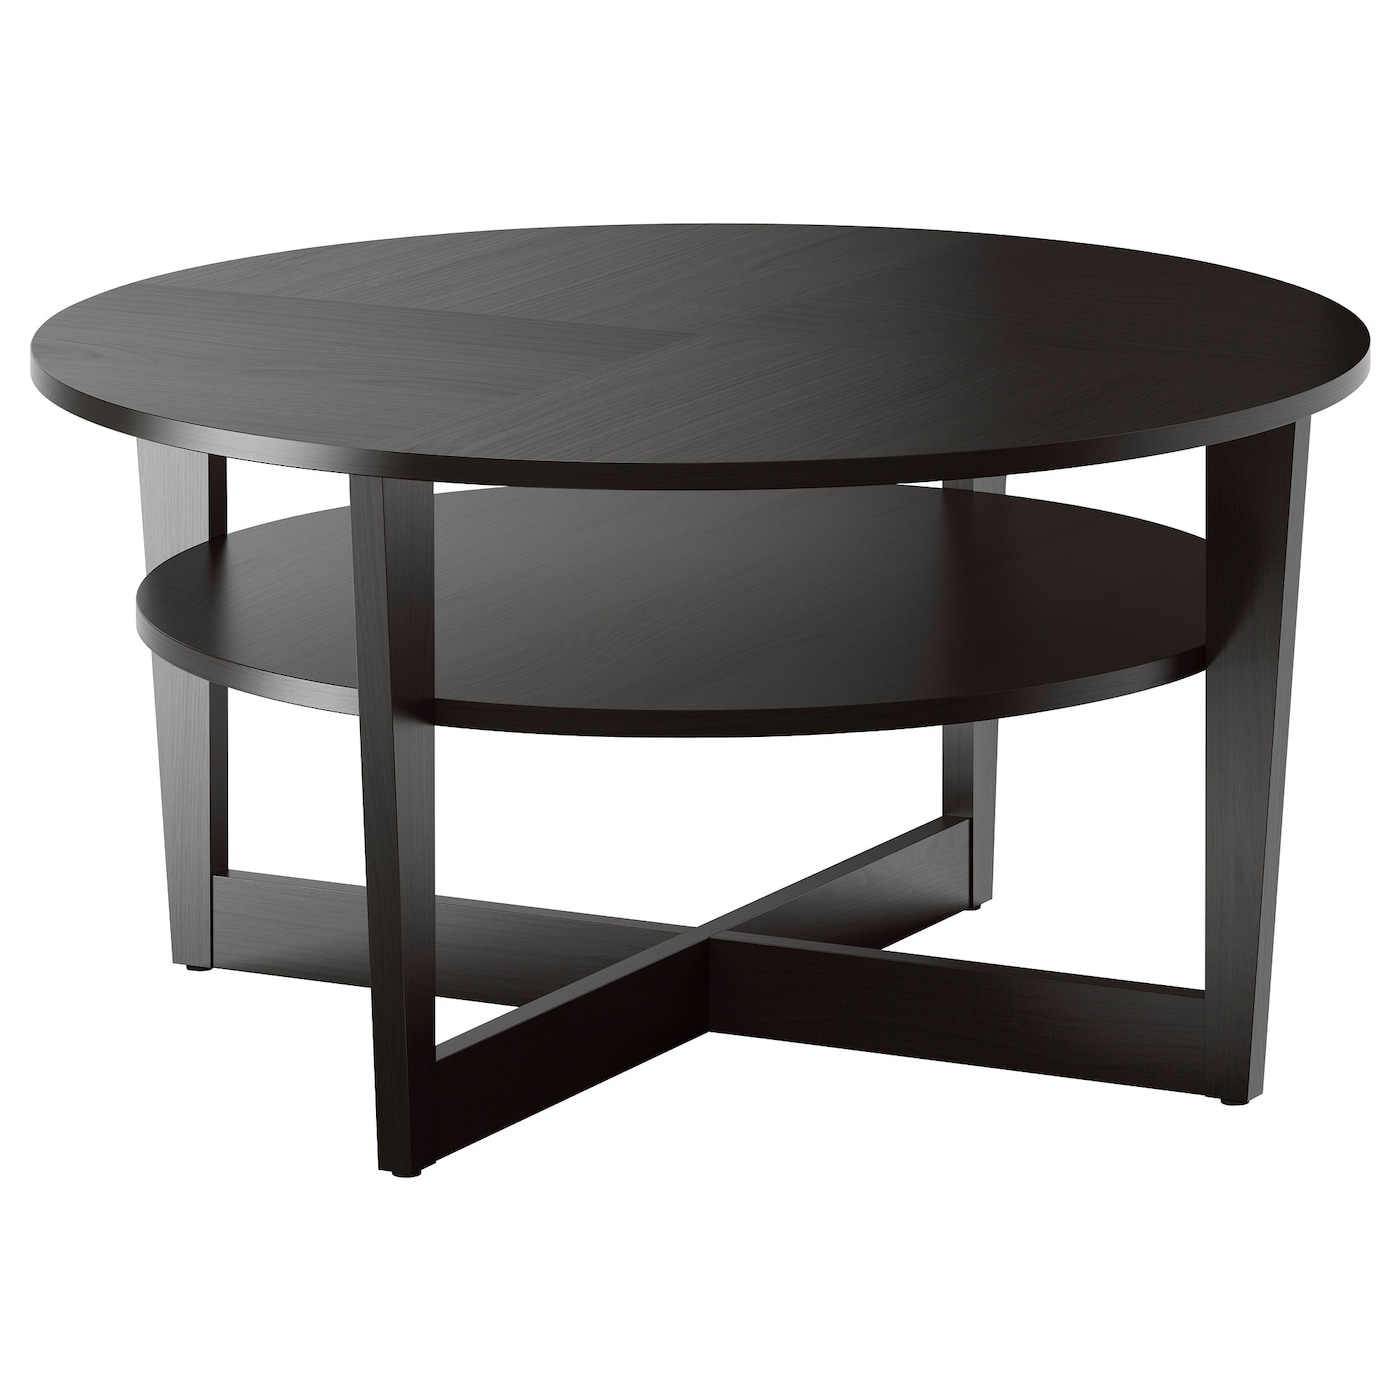 IKEA VEJMON coffee table The veneered surface is durable, stain resistant and easy to keep clean.